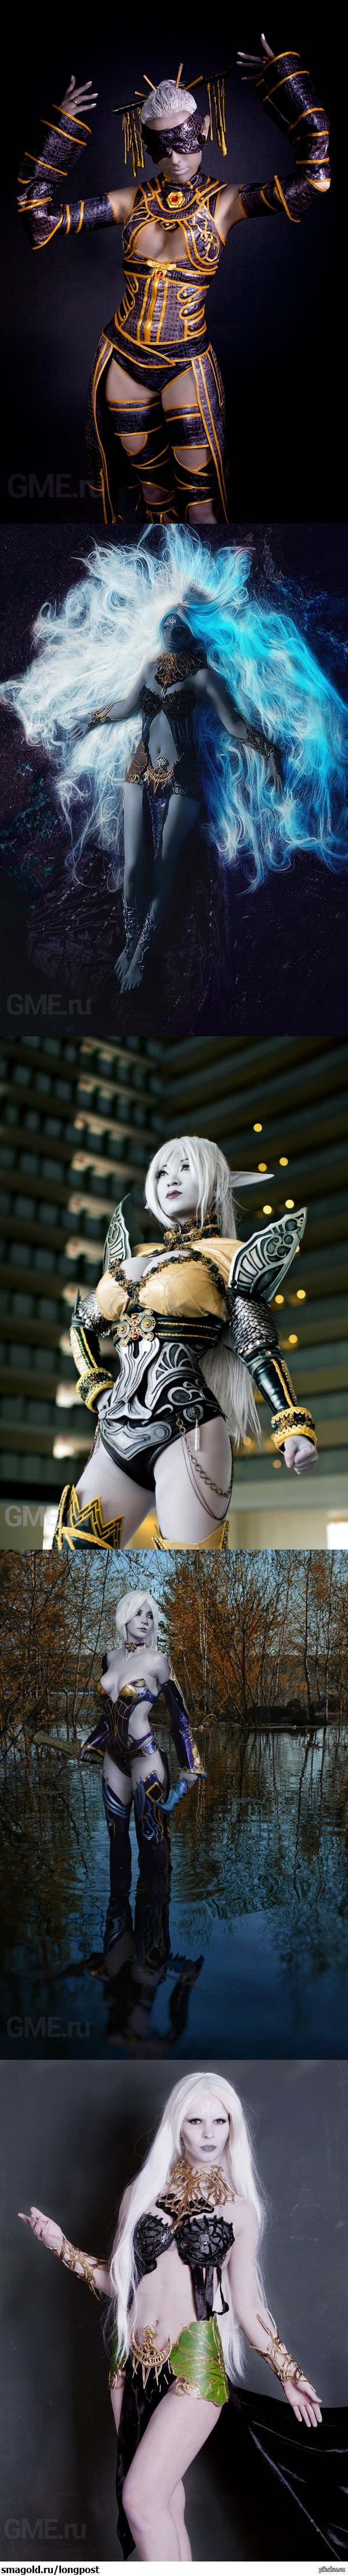 Lineage 2 porn cosplay naked pictures